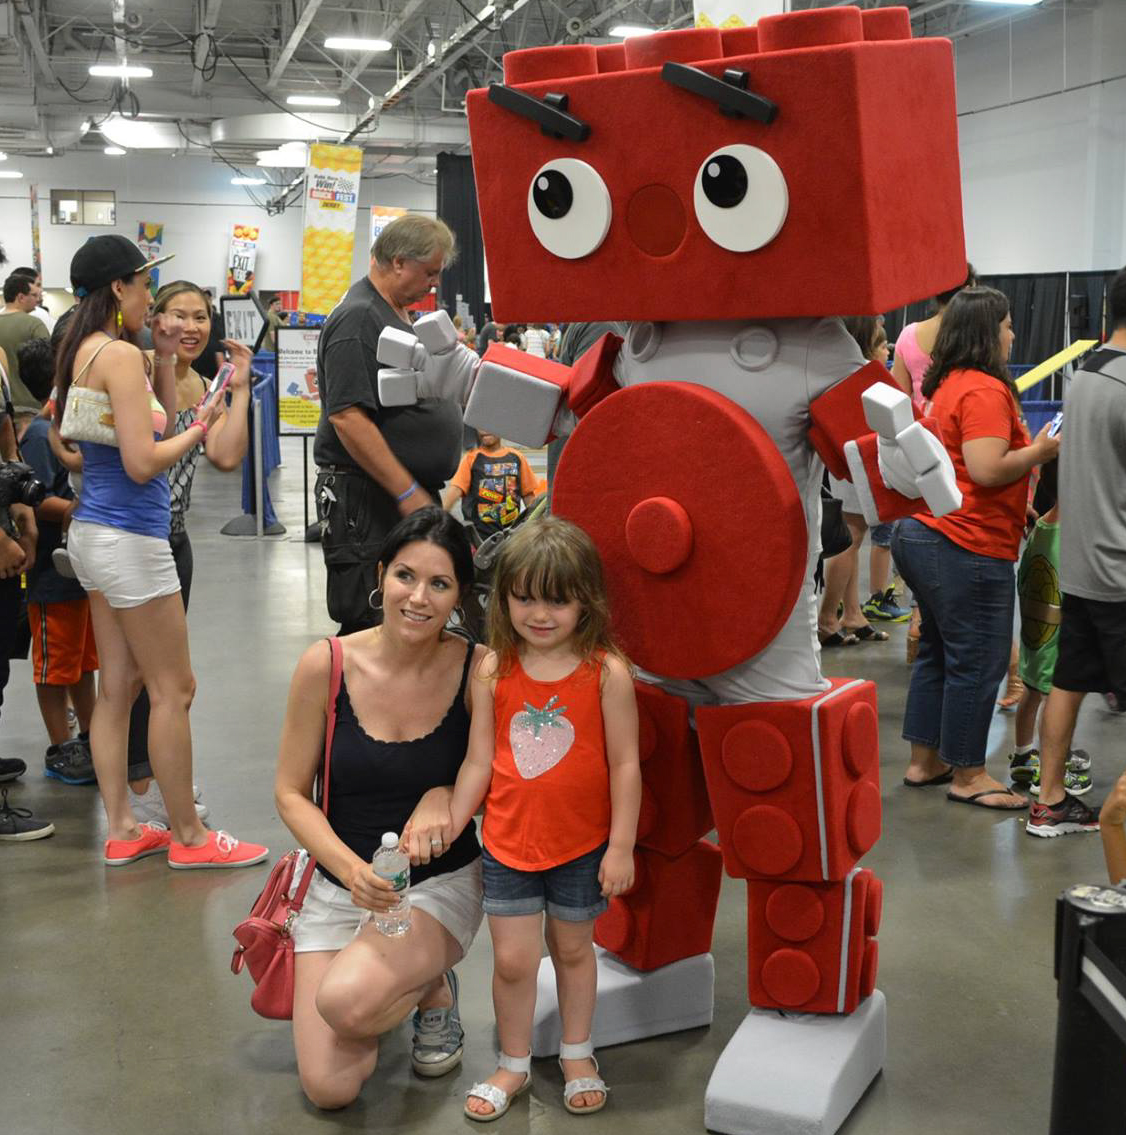 Brick Fest Live LEGO Fan Experience Makes Its Way to Sacramento Convention Center